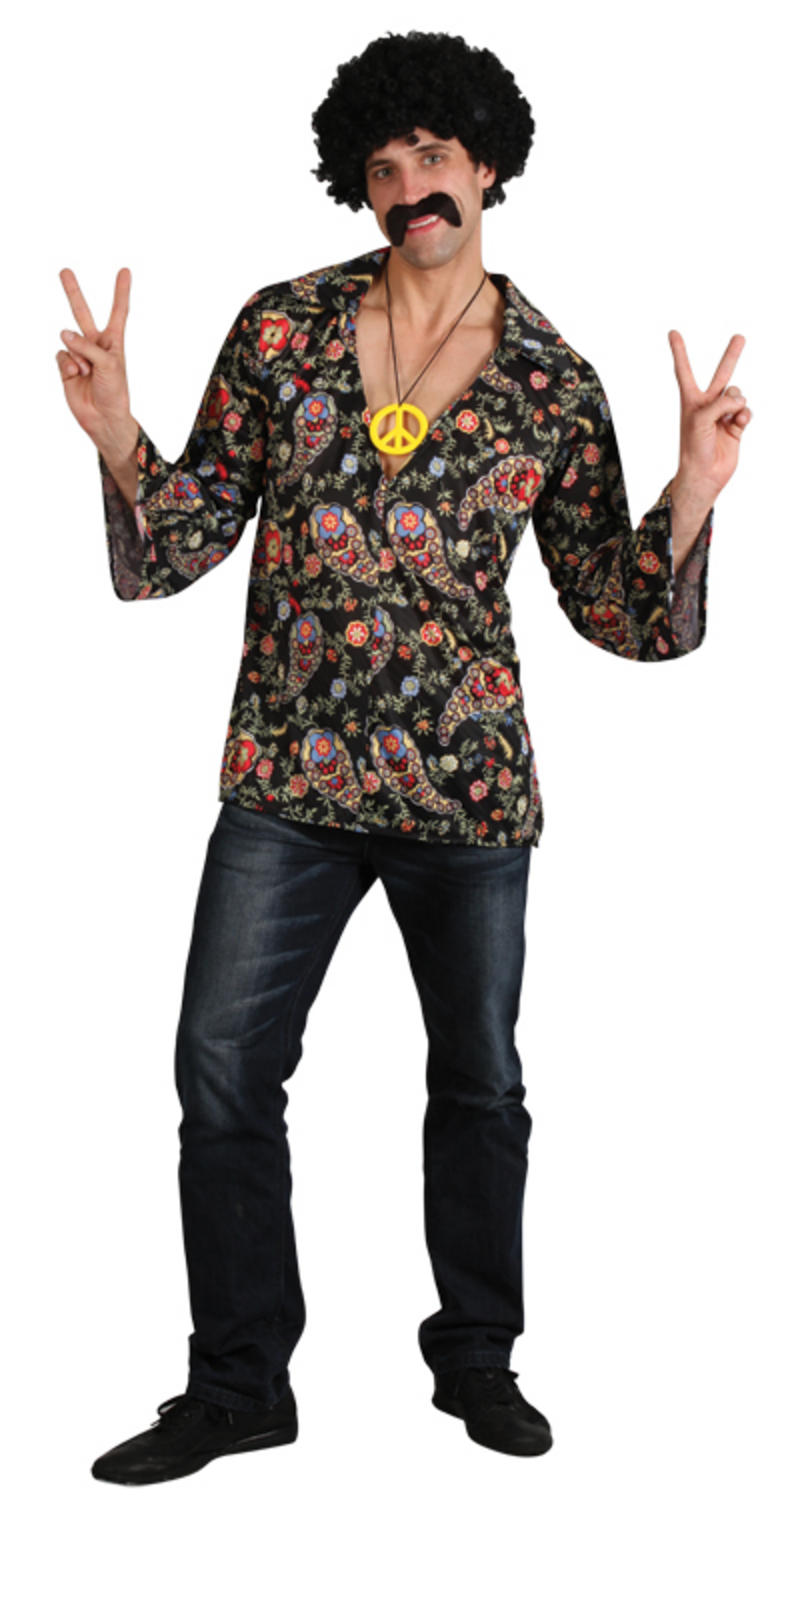 Cool Hippy Groovy Style Flower Power Shirt With Peace ...